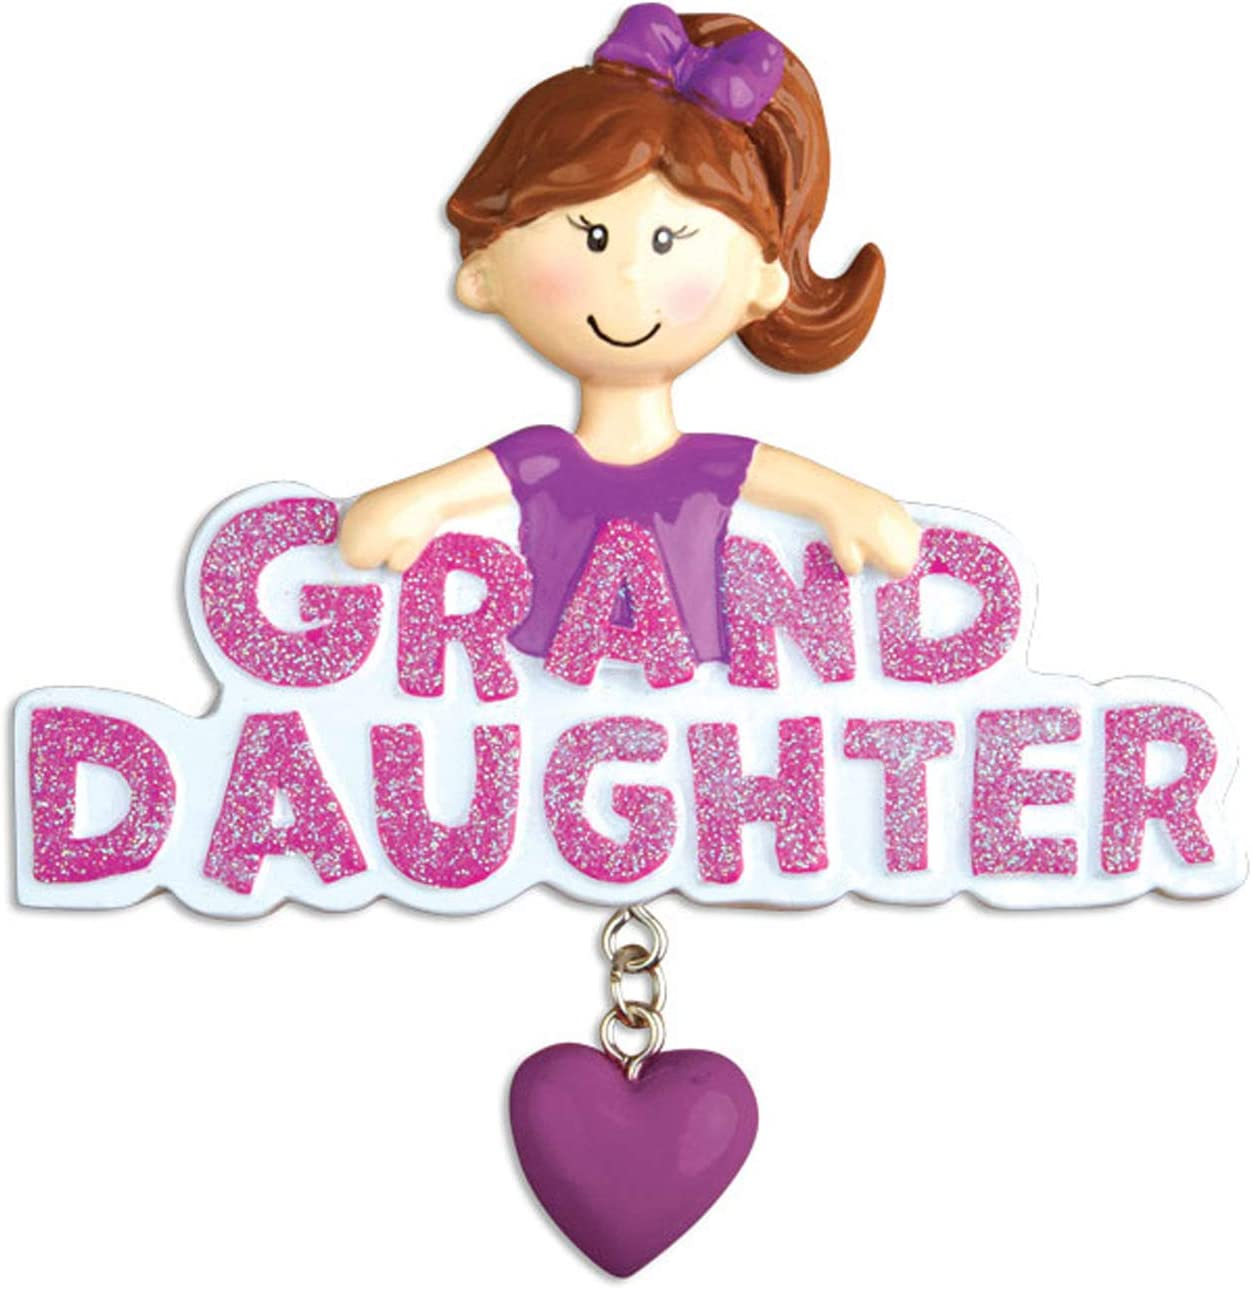 Personalized Granddaughter Christmas Ornaments 2020 Amazon.com: Personalized Granddaughter Christmas Tree Ornament